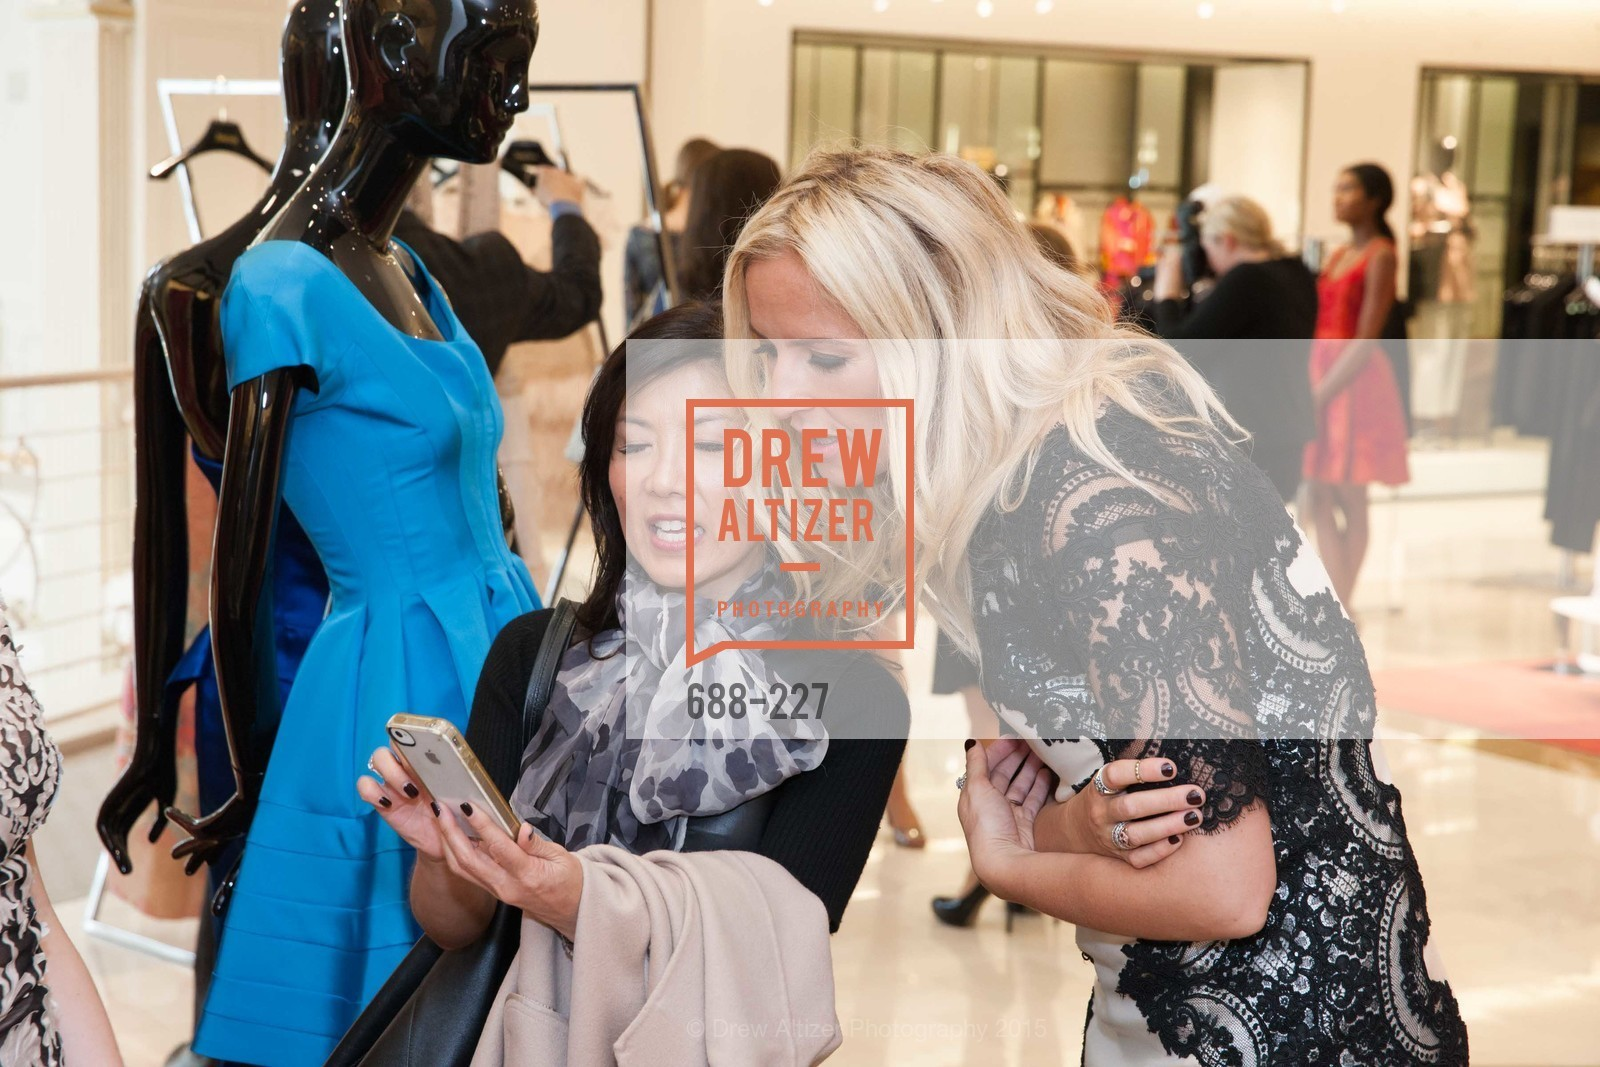 Jin Wang, Keren Craig, Keren Craig Personal Appearance for Marchesa Fall Trunk Show, Neiman Marcus, May 7th, 2015,Drew Altizer, Drew Altizer Photography, full-service event agency, private events, San Francisco photographer, photographer California